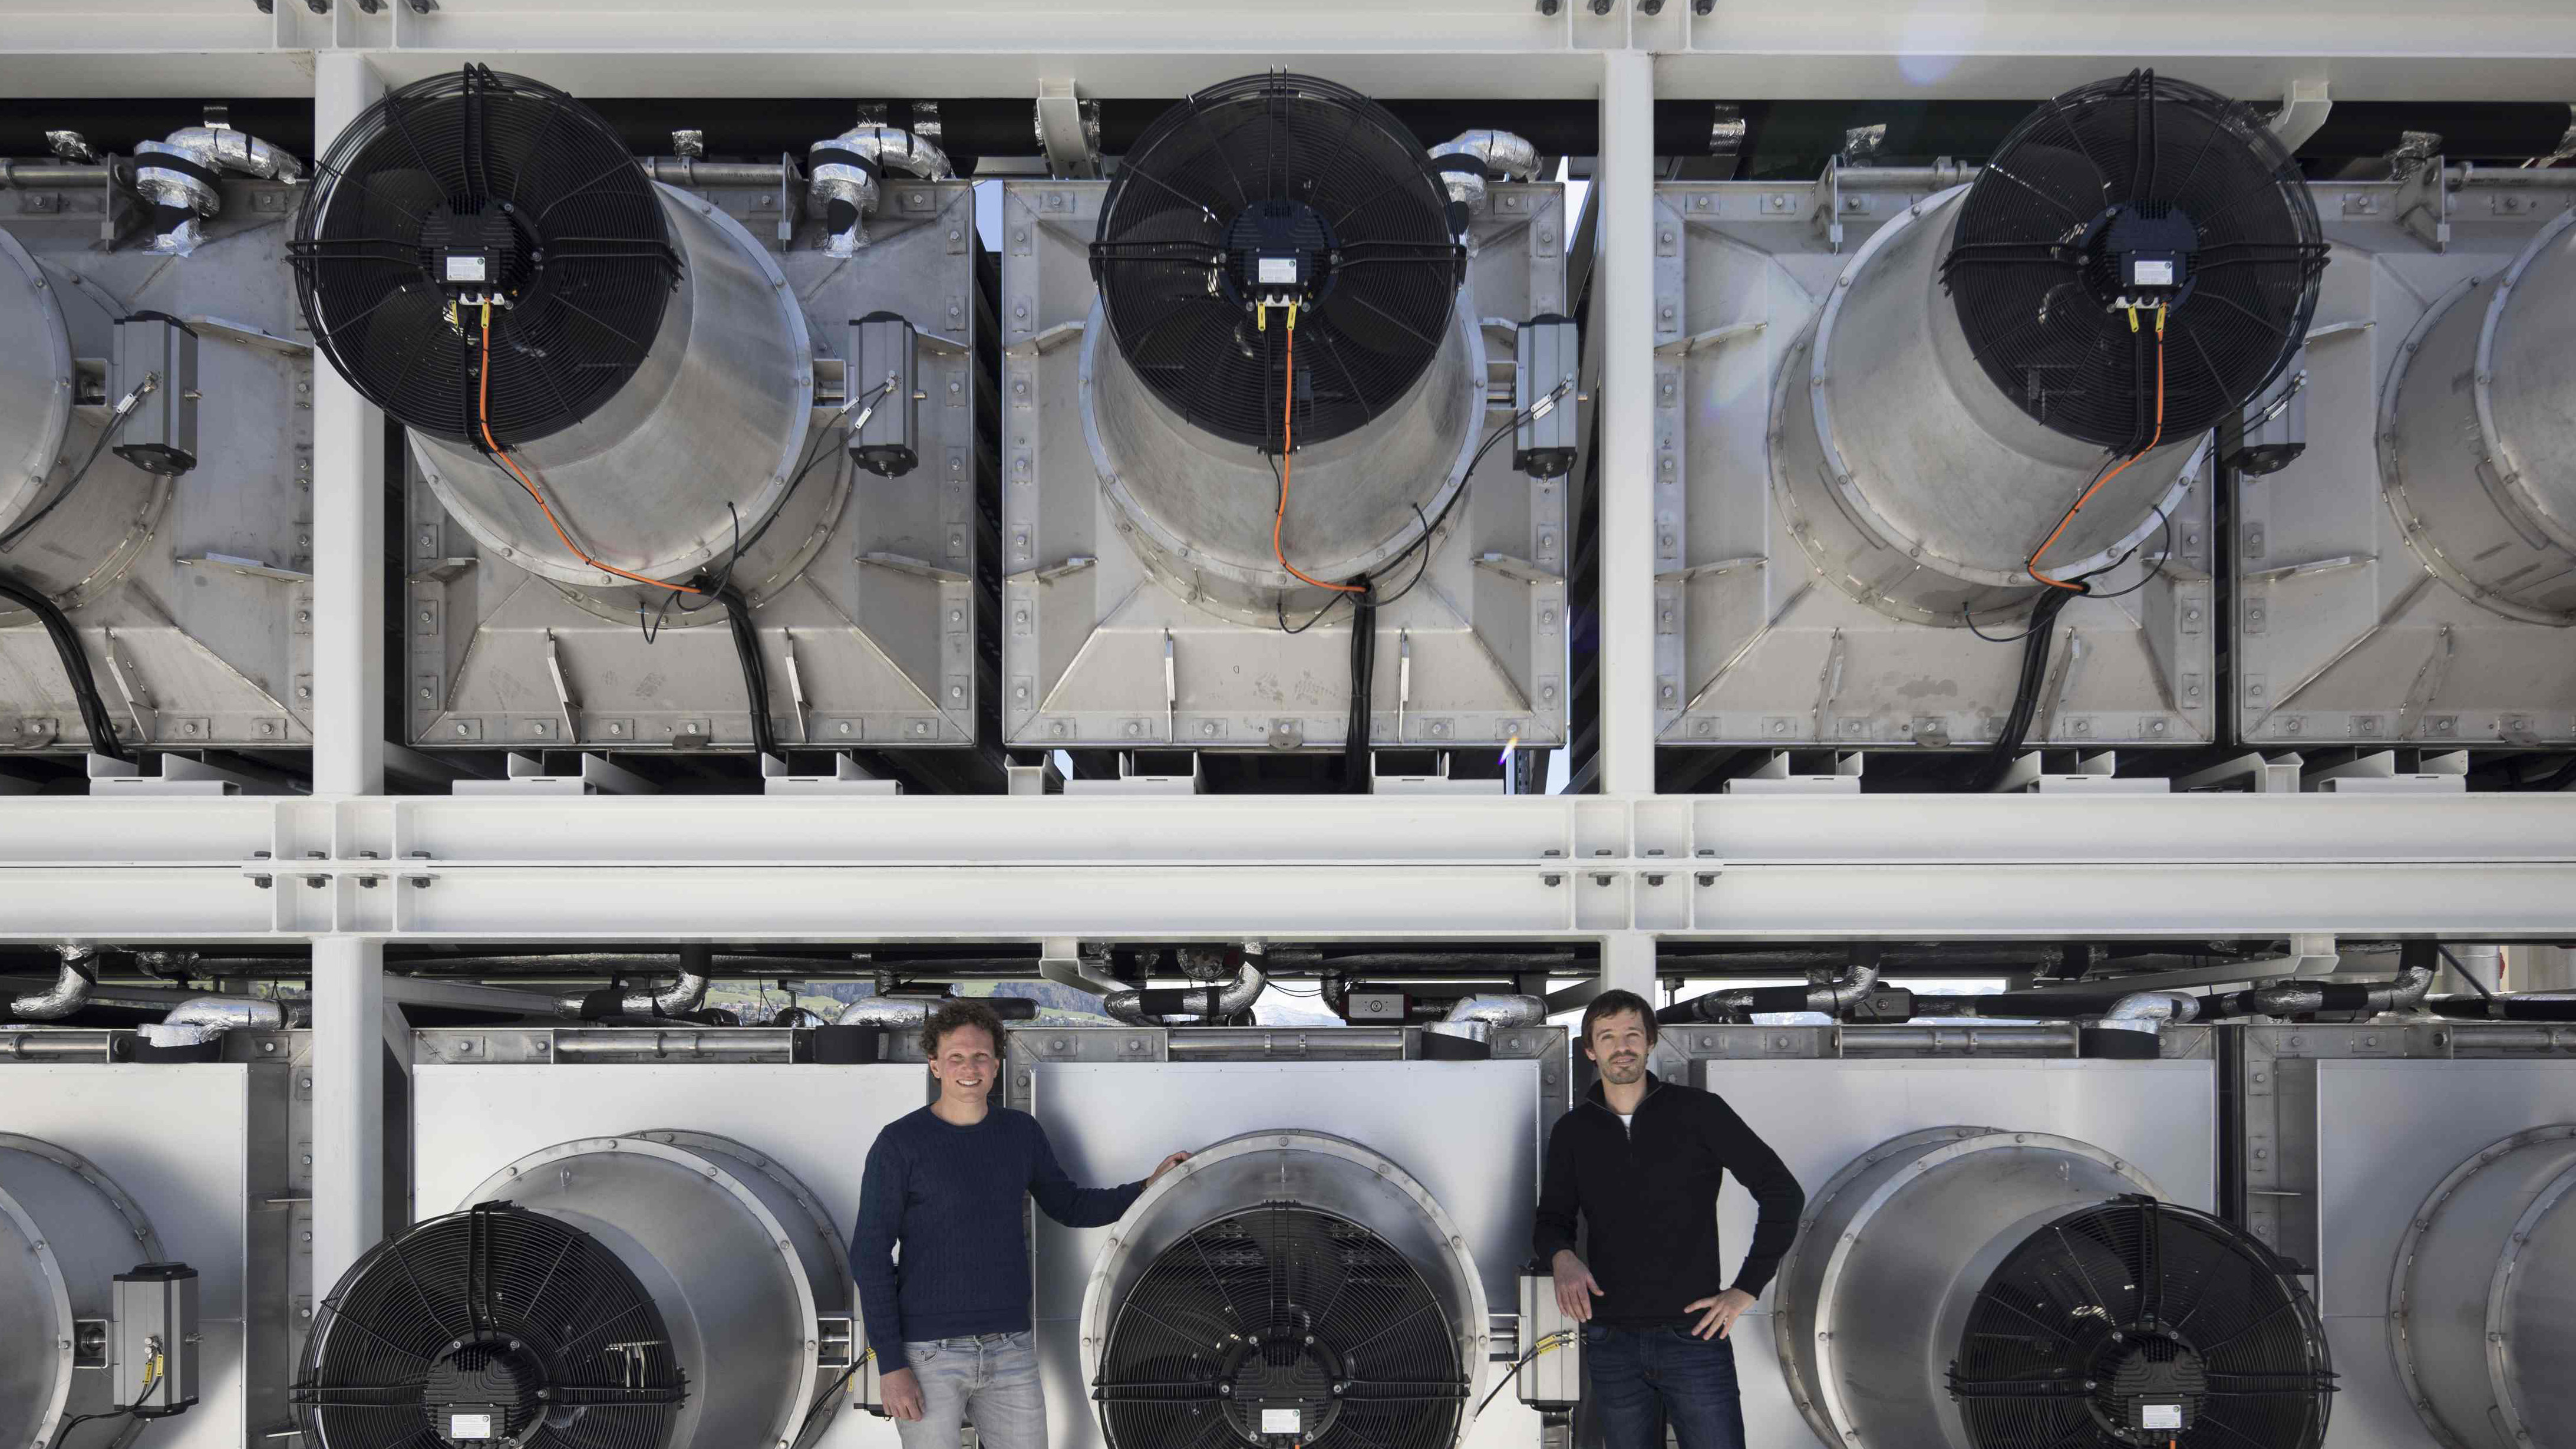 Founders Christopha Gebald and Jan Wurzbacher stand next to Climeworks CO2 capture plant in Hinwil, Canton of Zurich, Switzerland. Climeworks sells and transports the CO2 to the neighbouring company which uses it for their greenhouses.